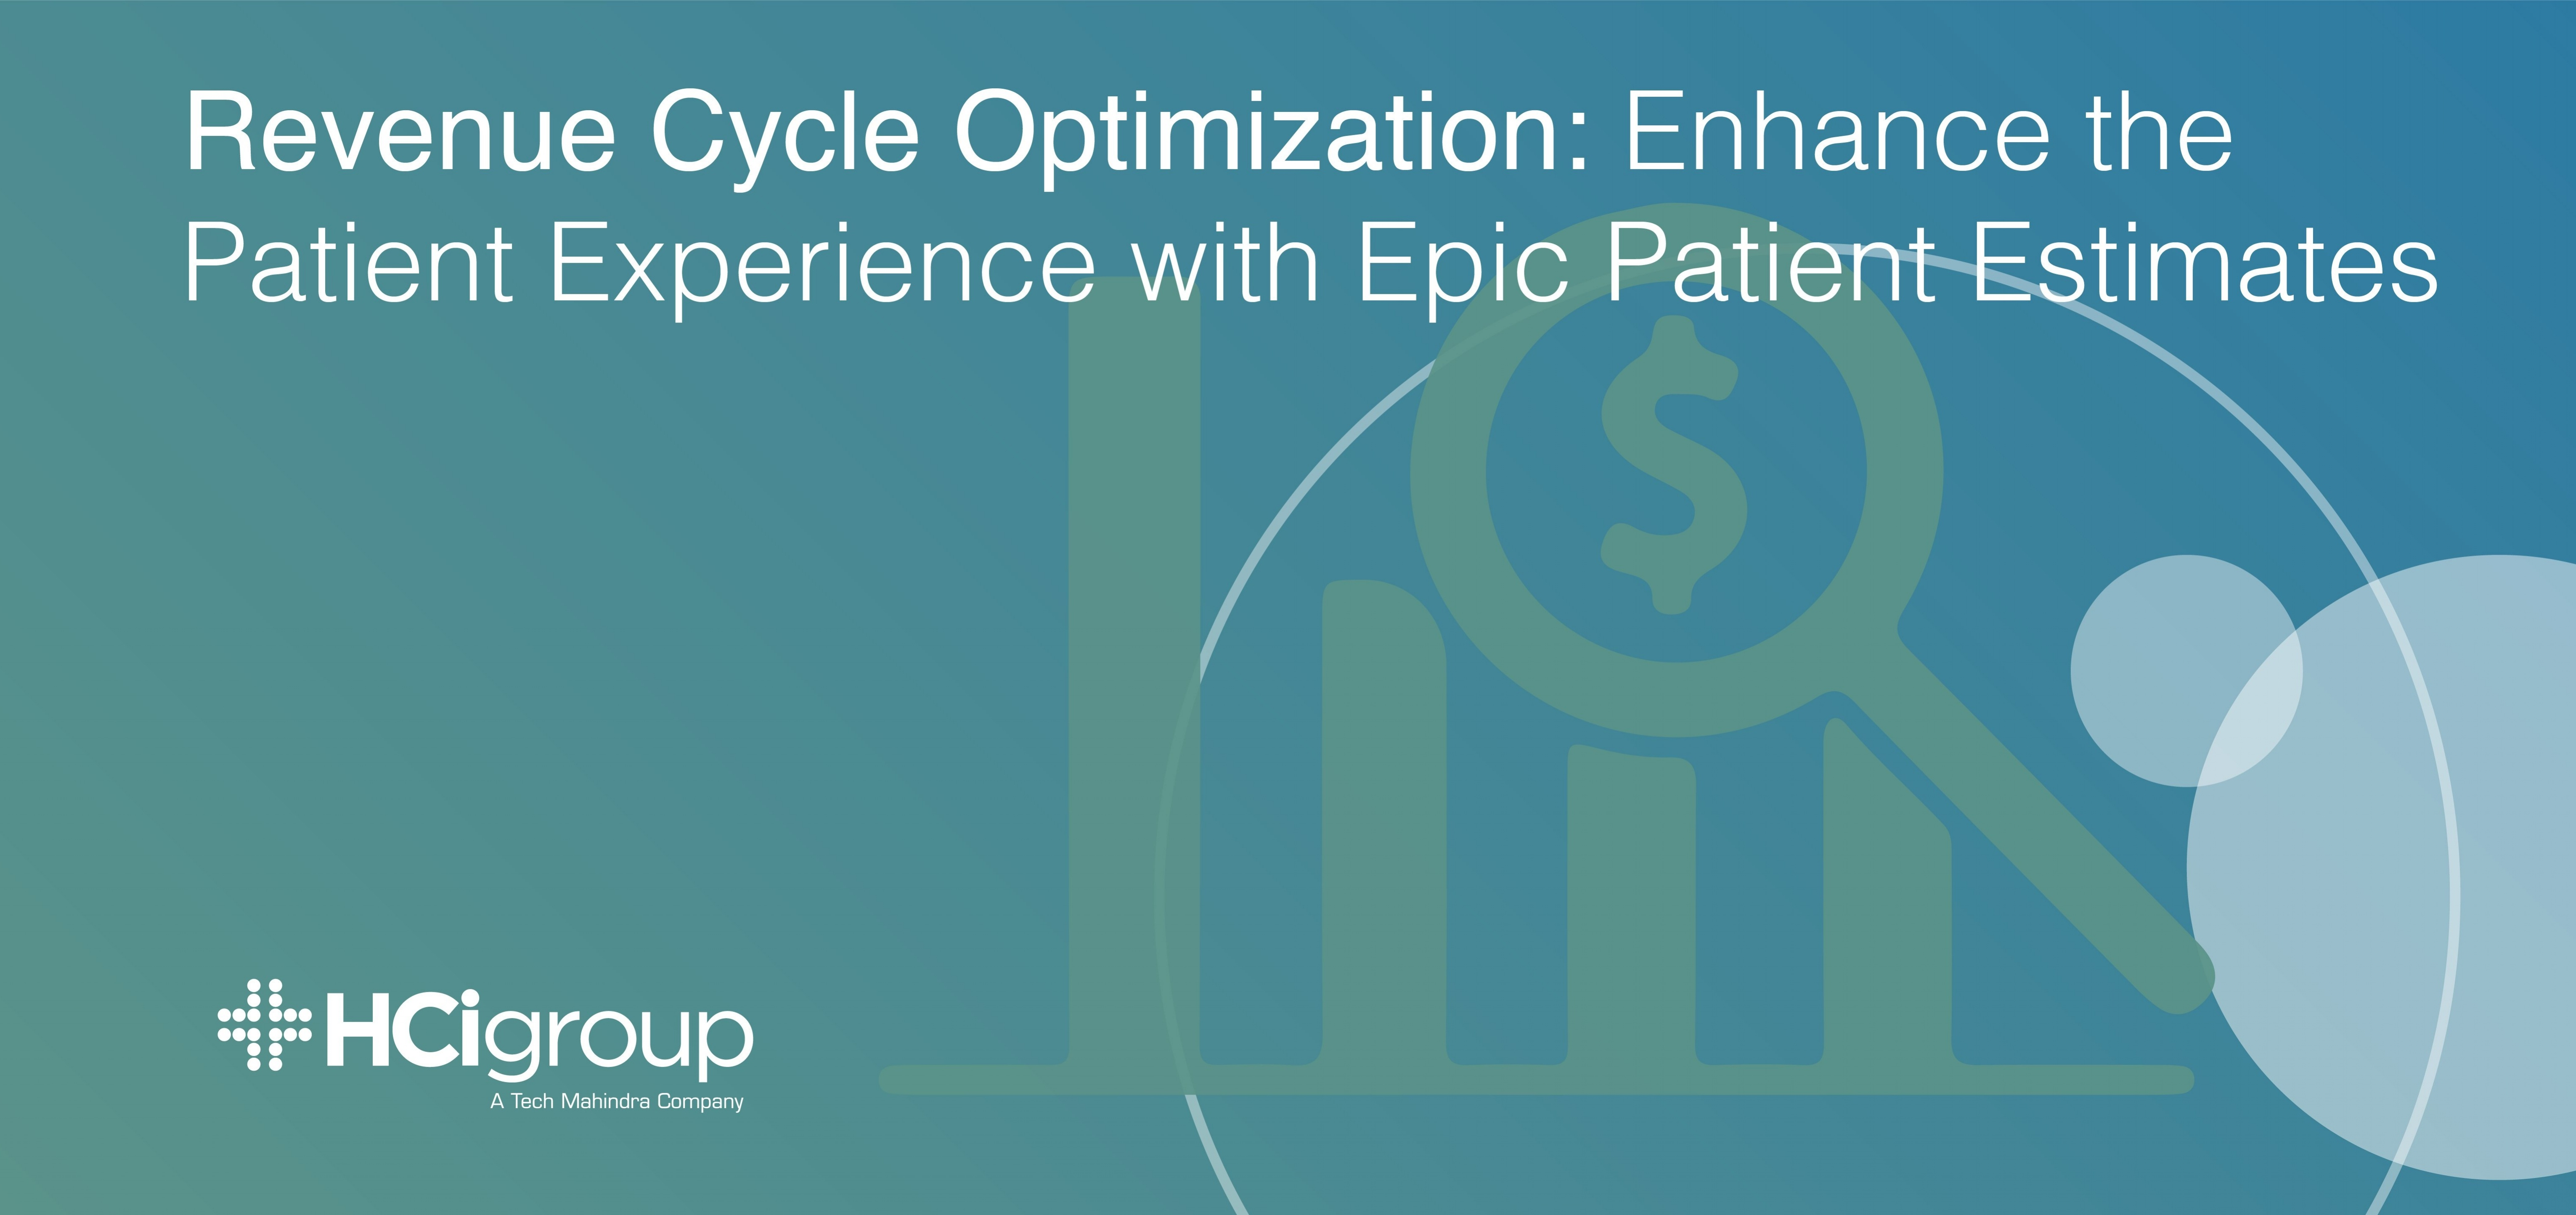 Revenue Cycle Optimization: Enhance the Patient Experience with Epic Patient Estimates